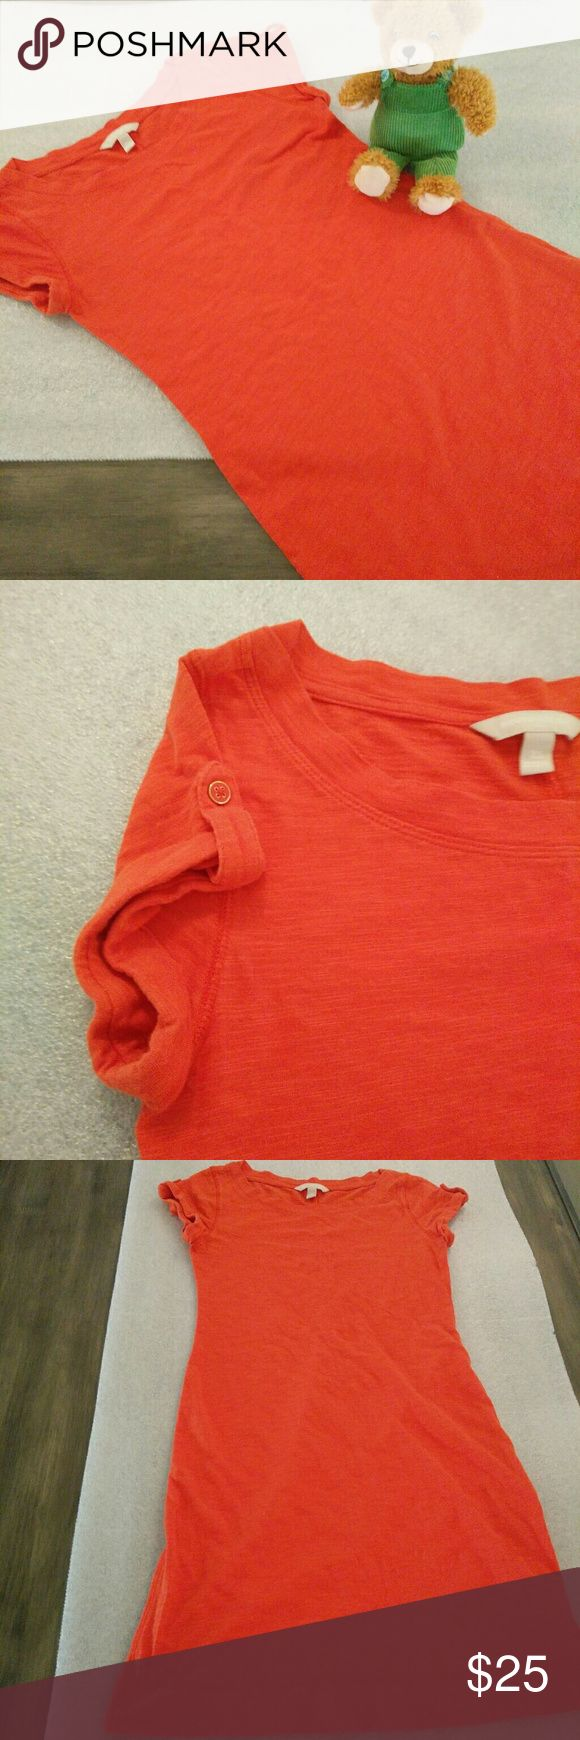 [Banana Republic] t-shirt dress Solid Orange in XS It's a cute tee shirt dress from Banana republic in orange color. The sleeve has little fold and button pattern to it. Very comfy and nice color. Size tag Xs. Can also fit to Small. Excellent condition. No flaws Banana Republic Dresses